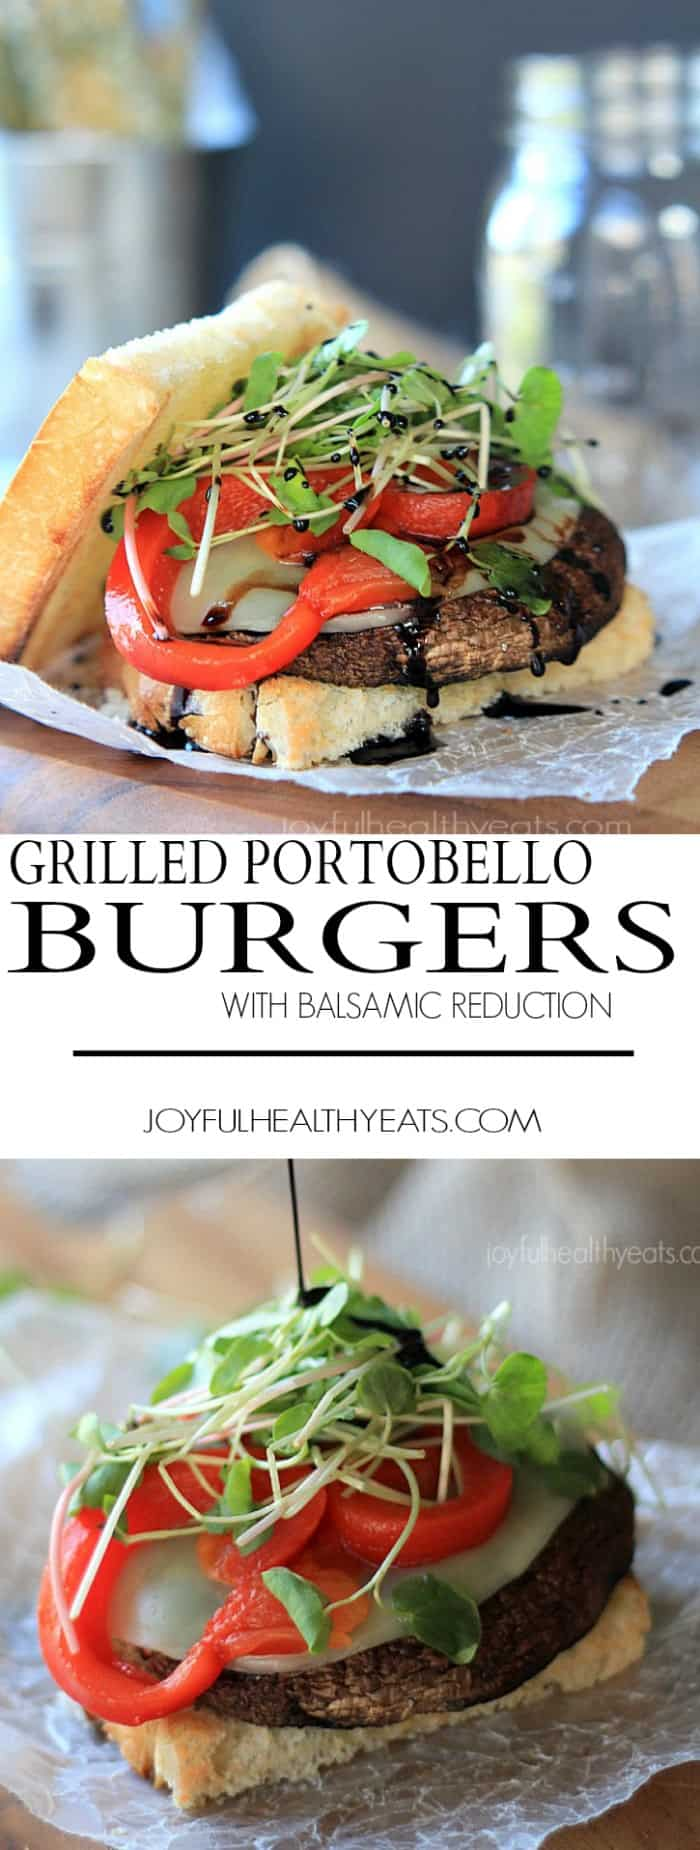 """Seriously the best """"faux burger"""" I have ever had! Grilled Portobello Burgers topped with provolone cheese, roasted red peppers, sprouts, and Balsamic Reduction 